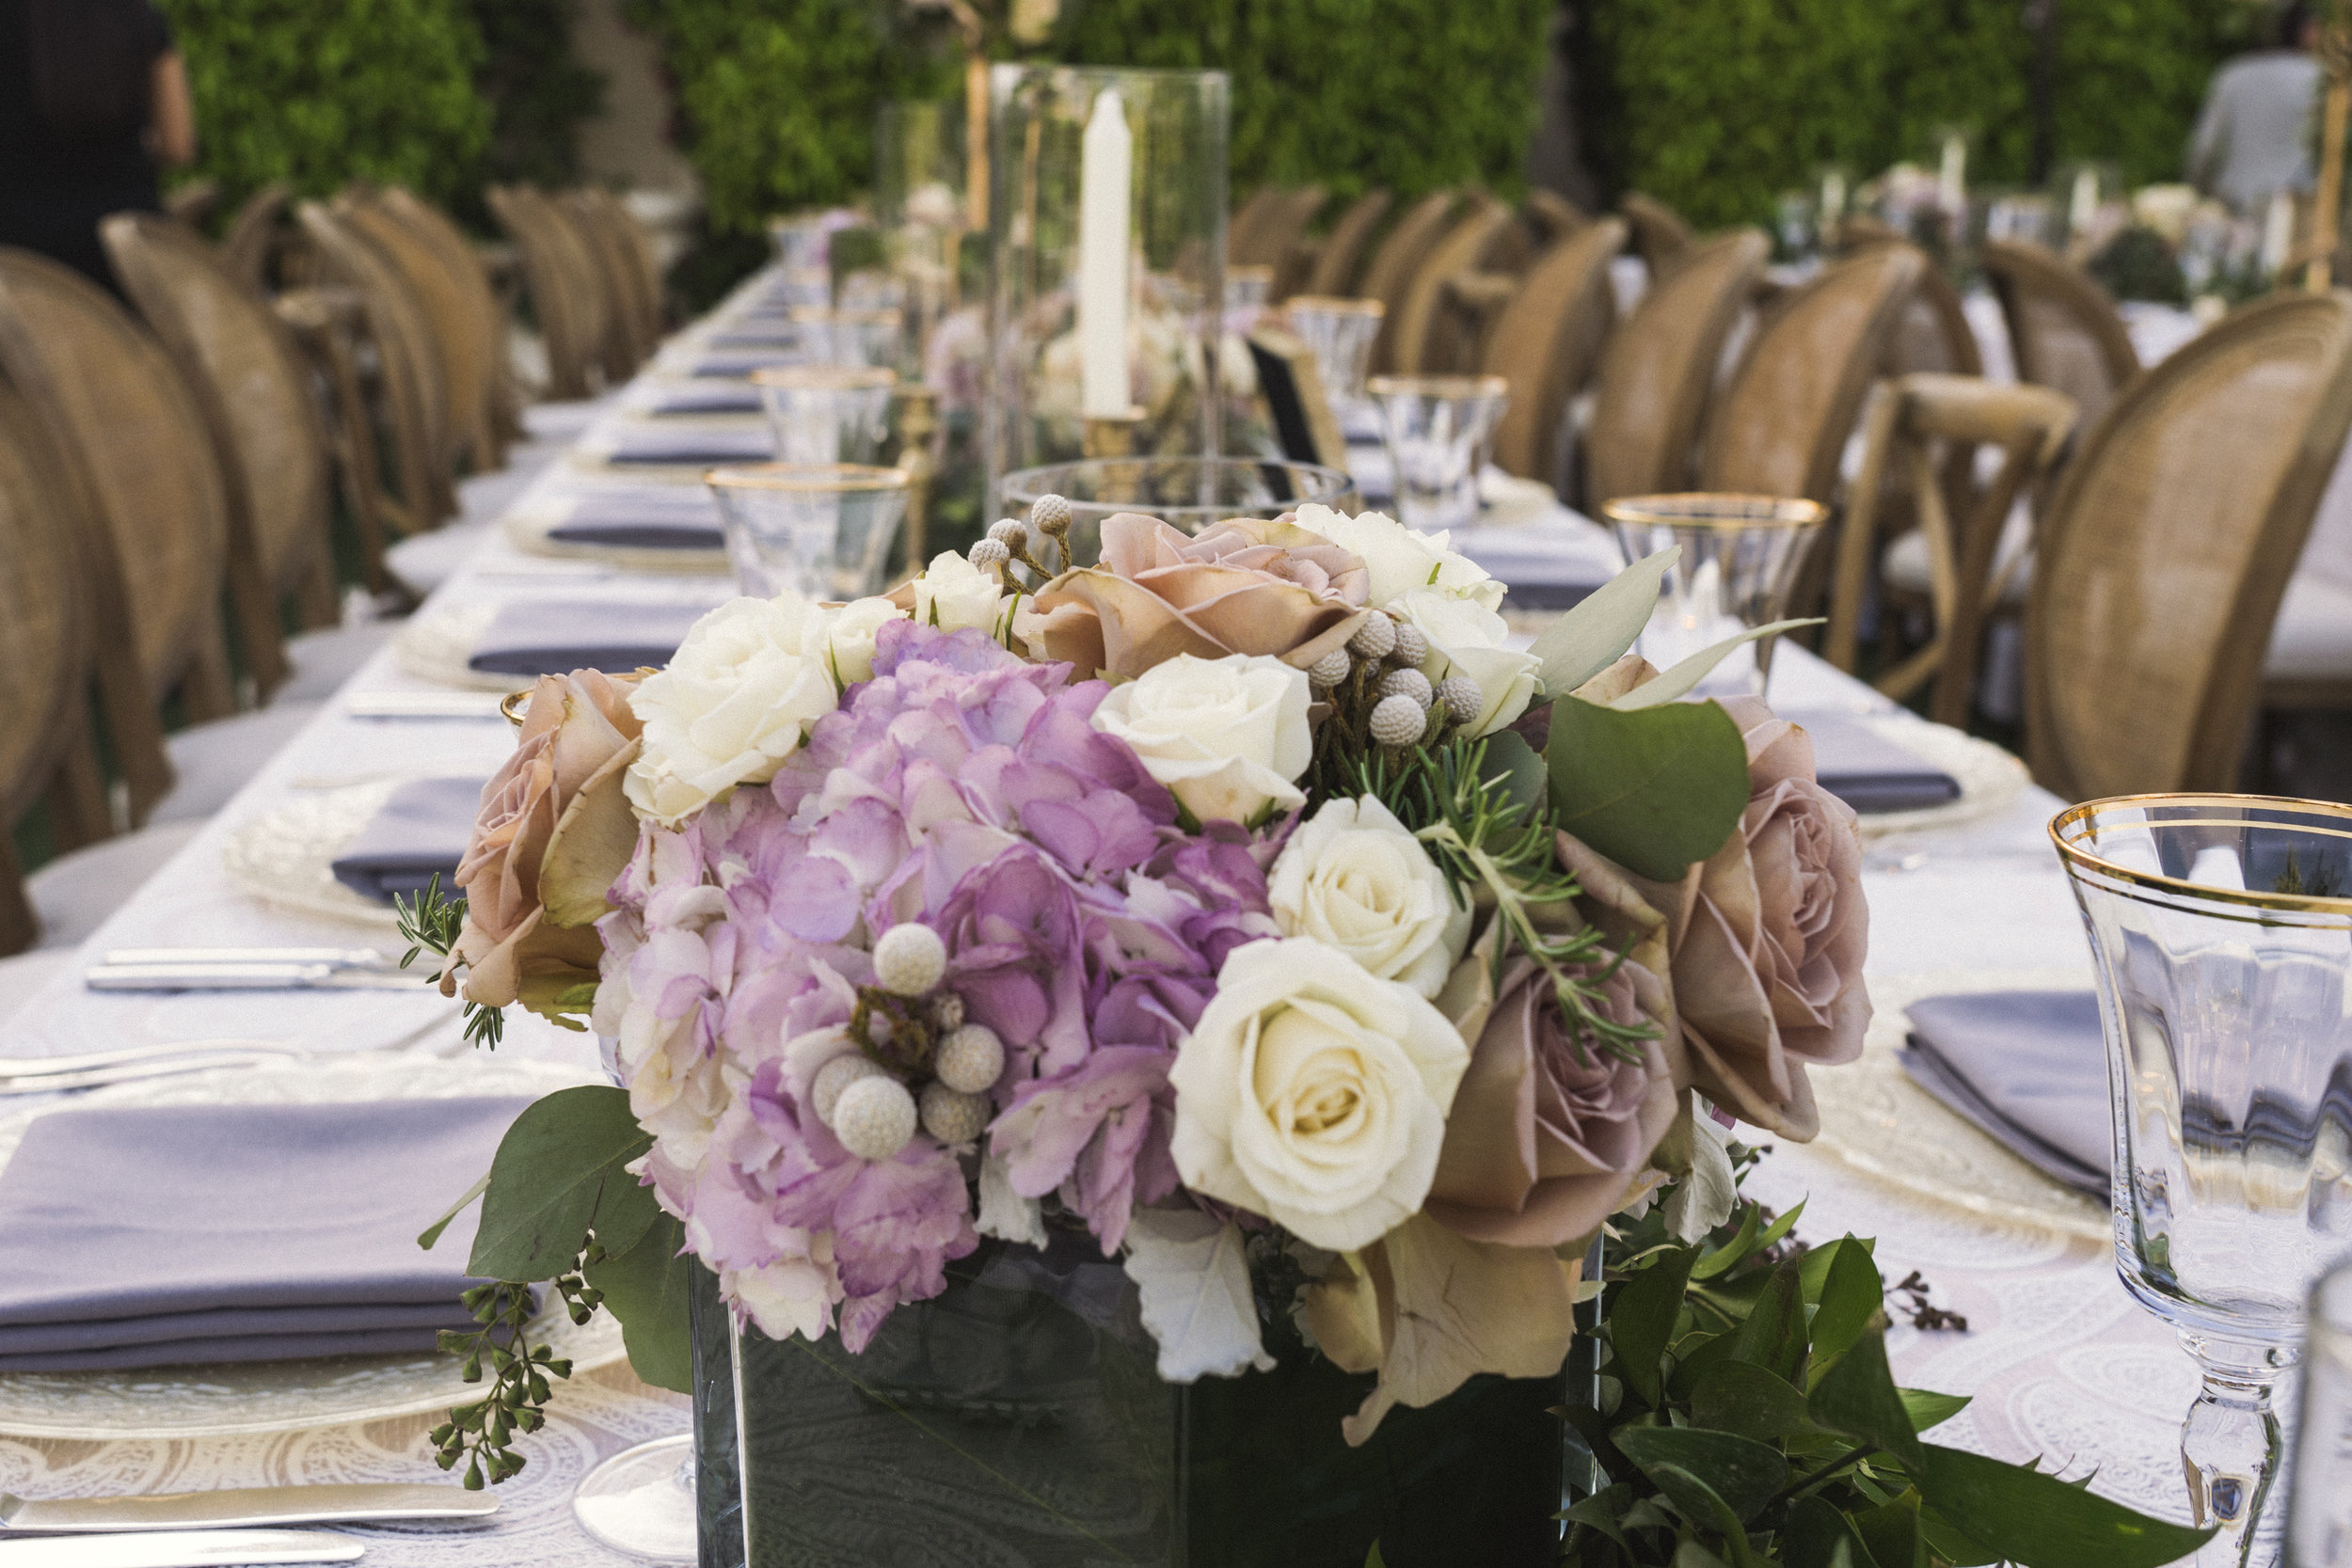 6 white rose purple hydrangea centerpiece candlelight dinner table Life Design Events photos by Keith and Melissa Photography.jpg